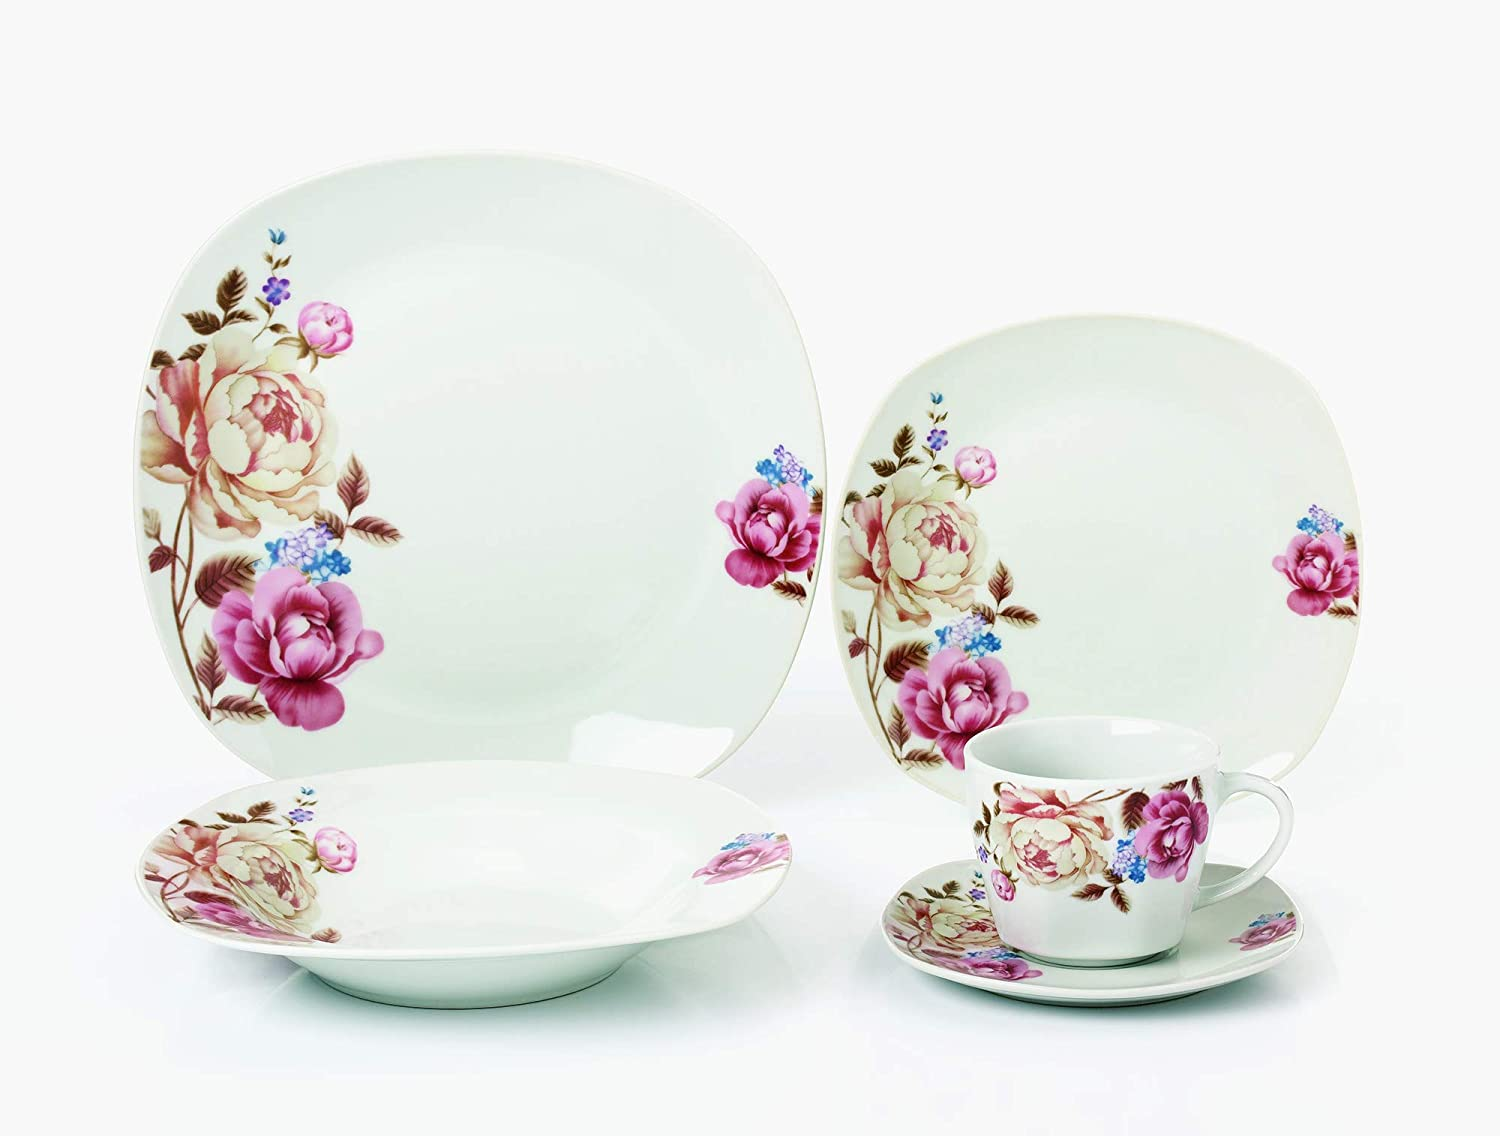 Lorren Home Trends LH428 Dinner Sets for gatherings, One Size, Pink